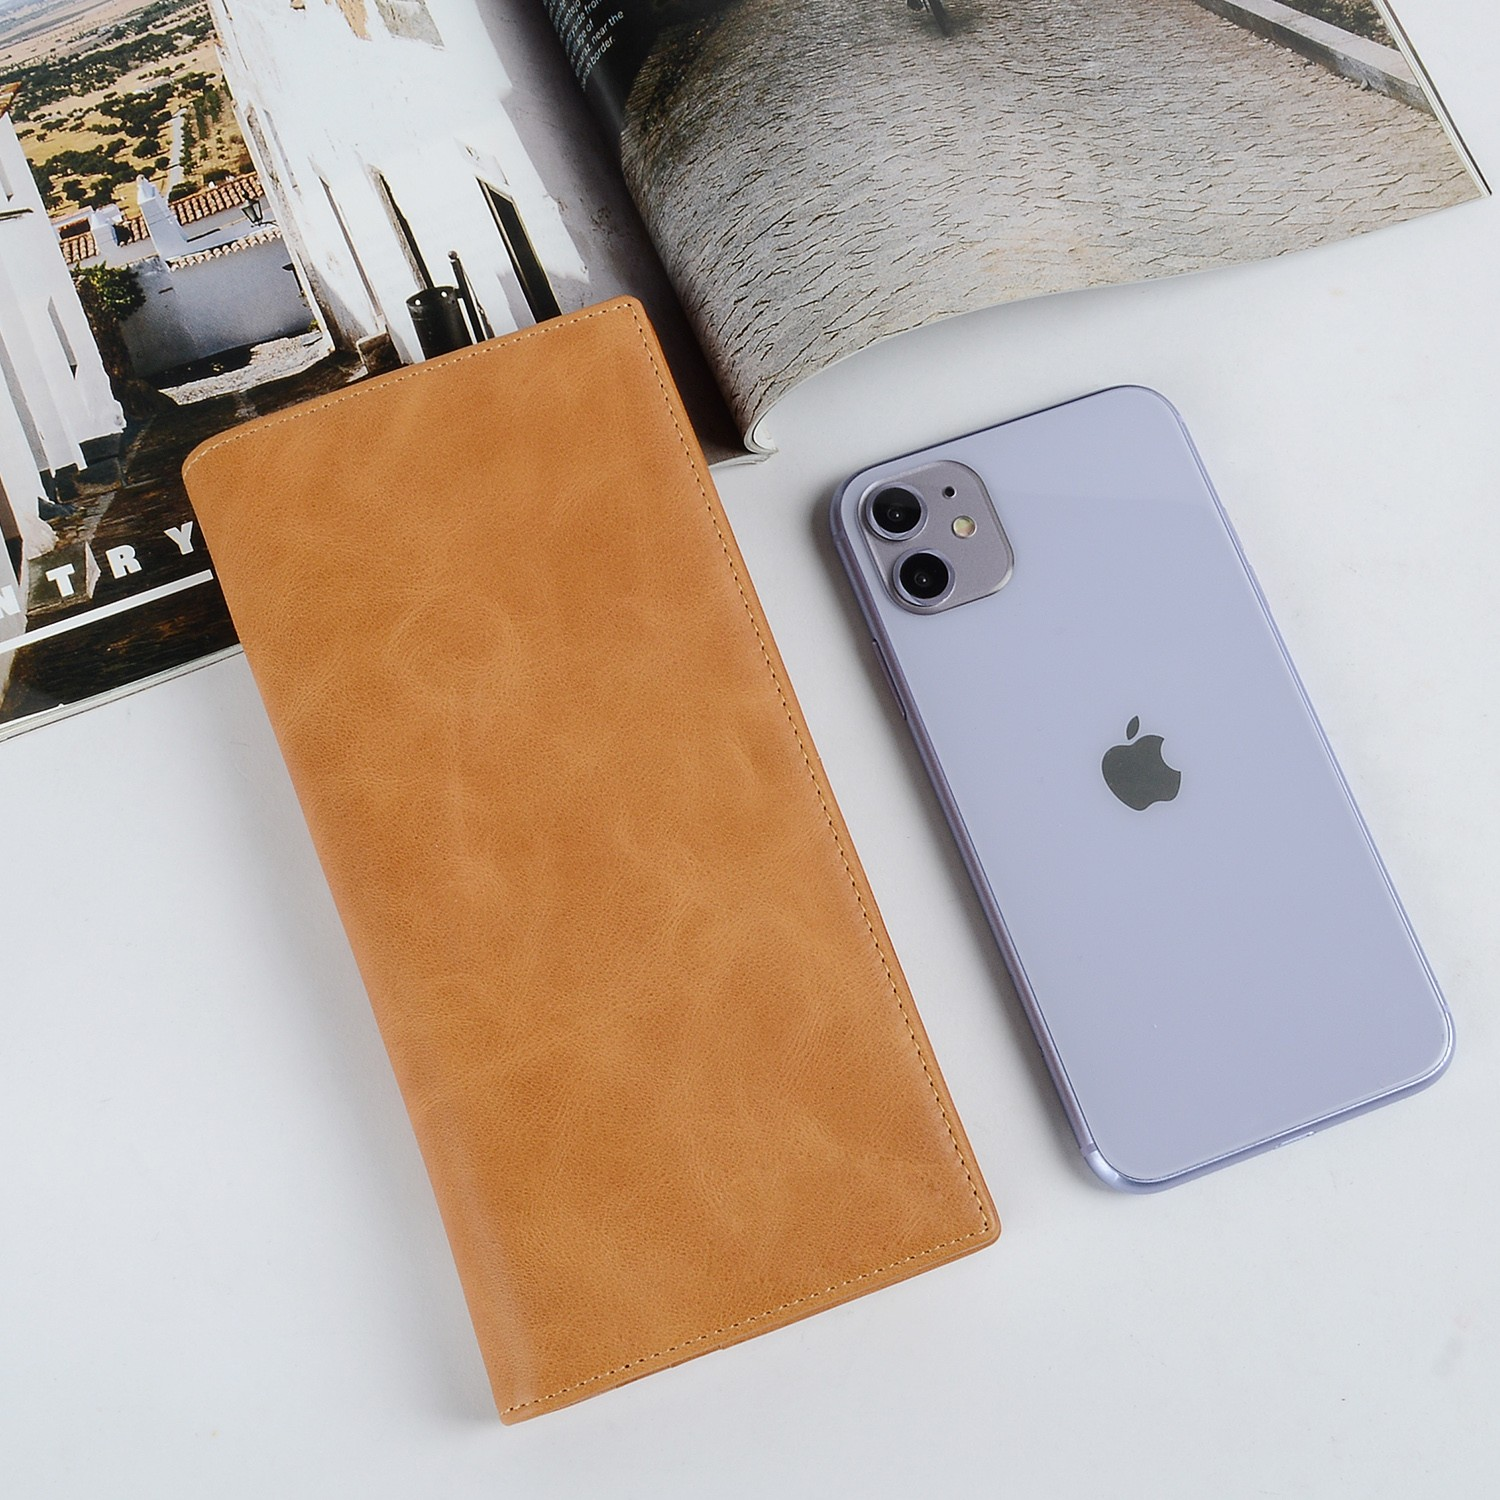 AIVI leather card holder wallet manufacturer for phone XS Max-9